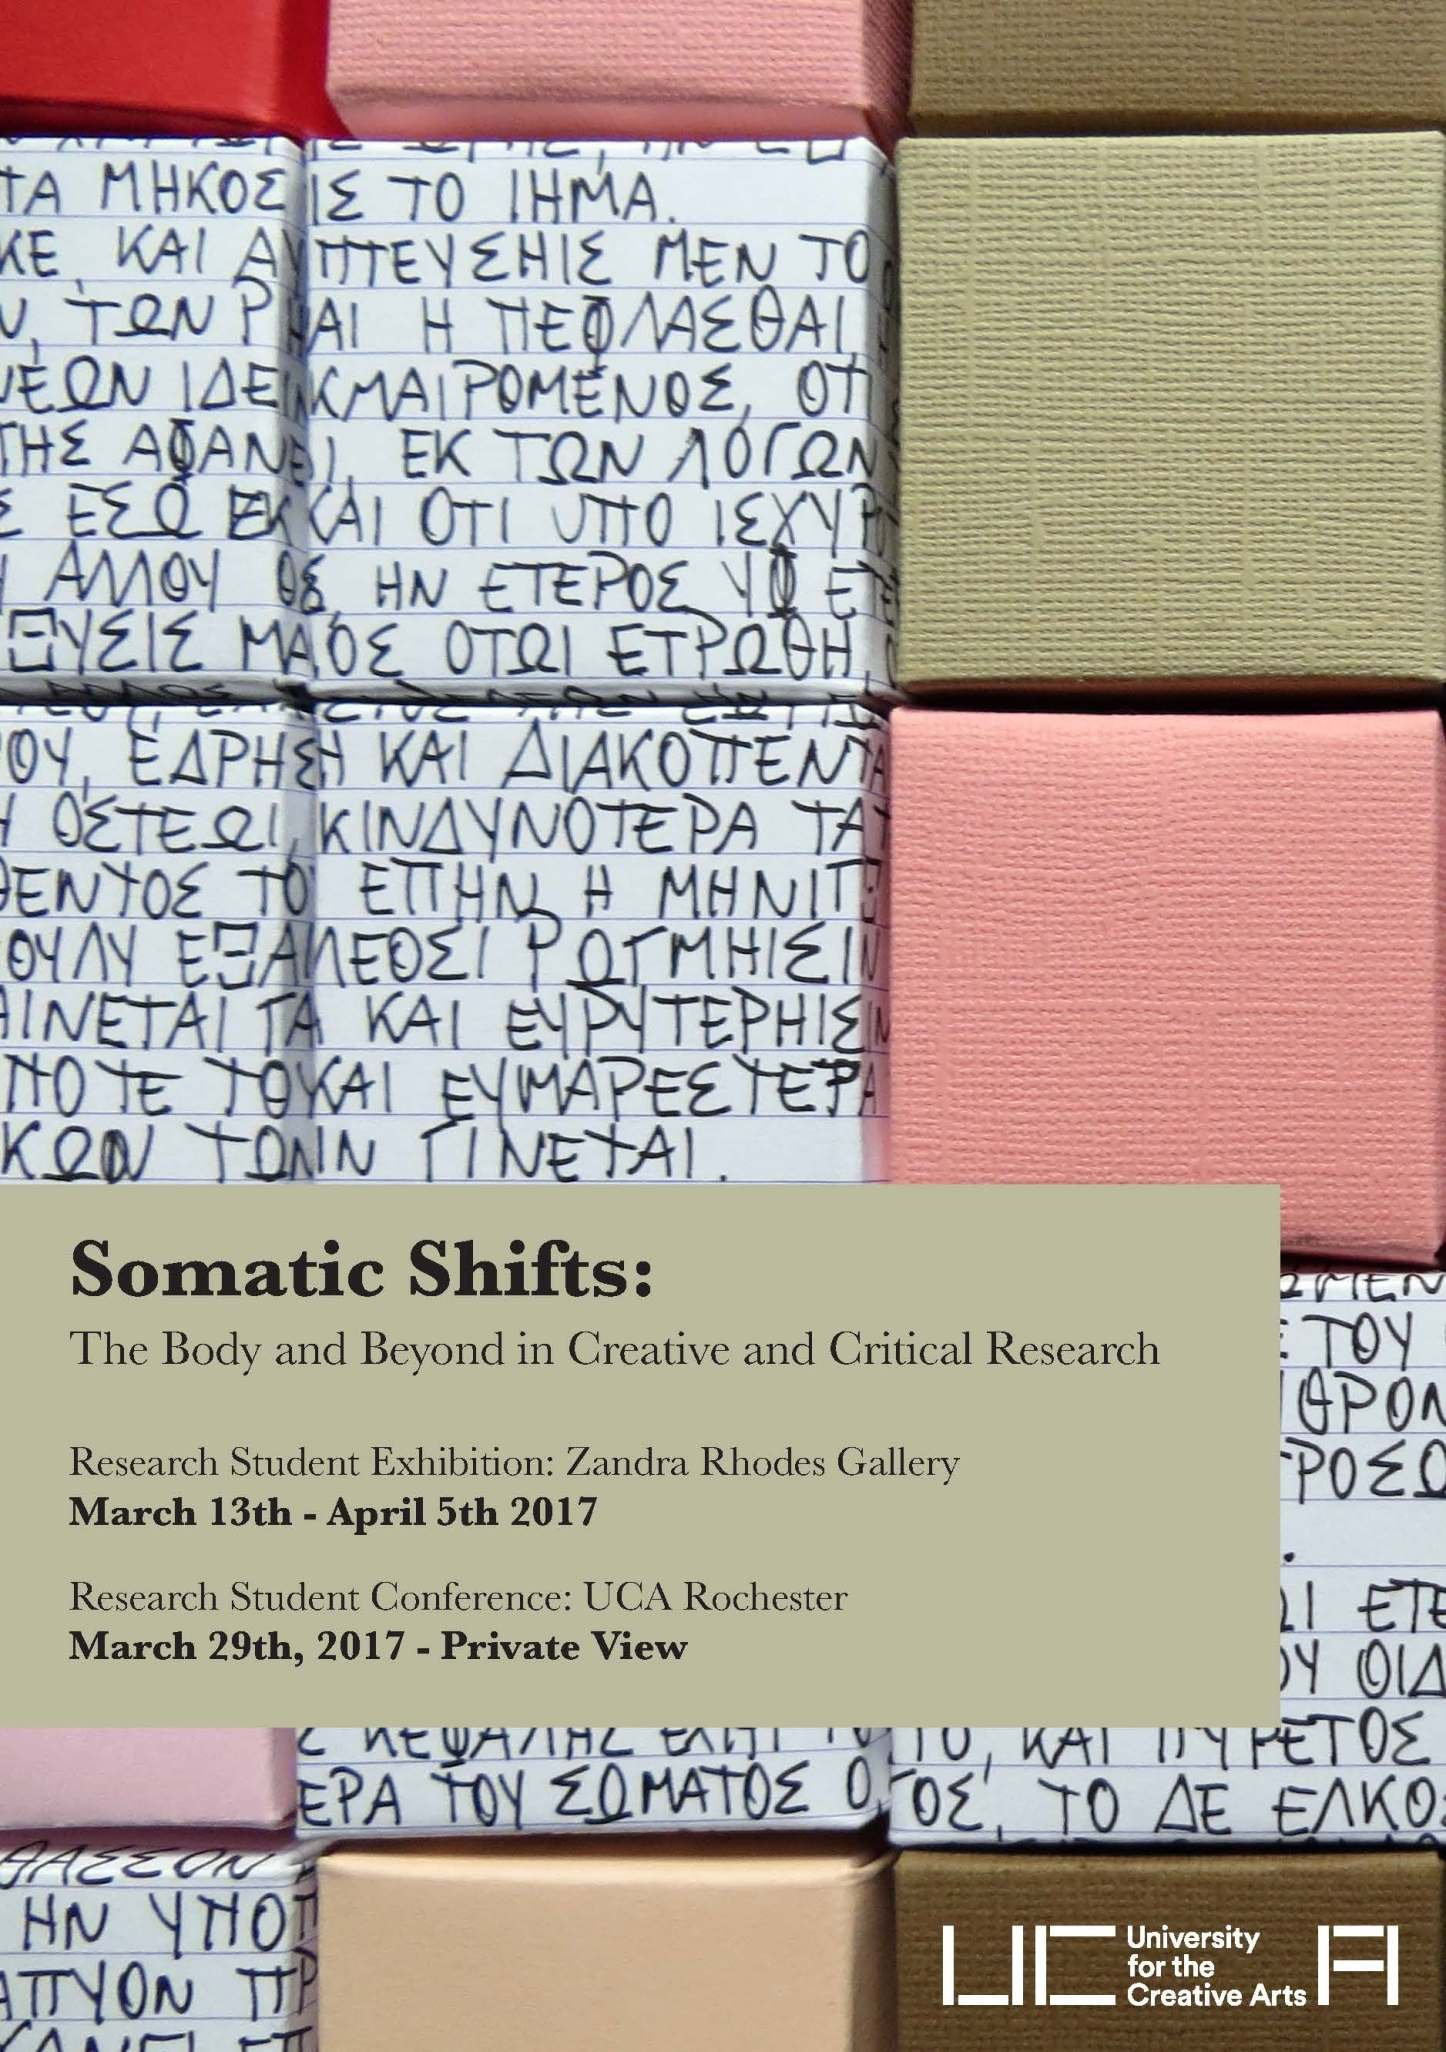 Somatic Shifts